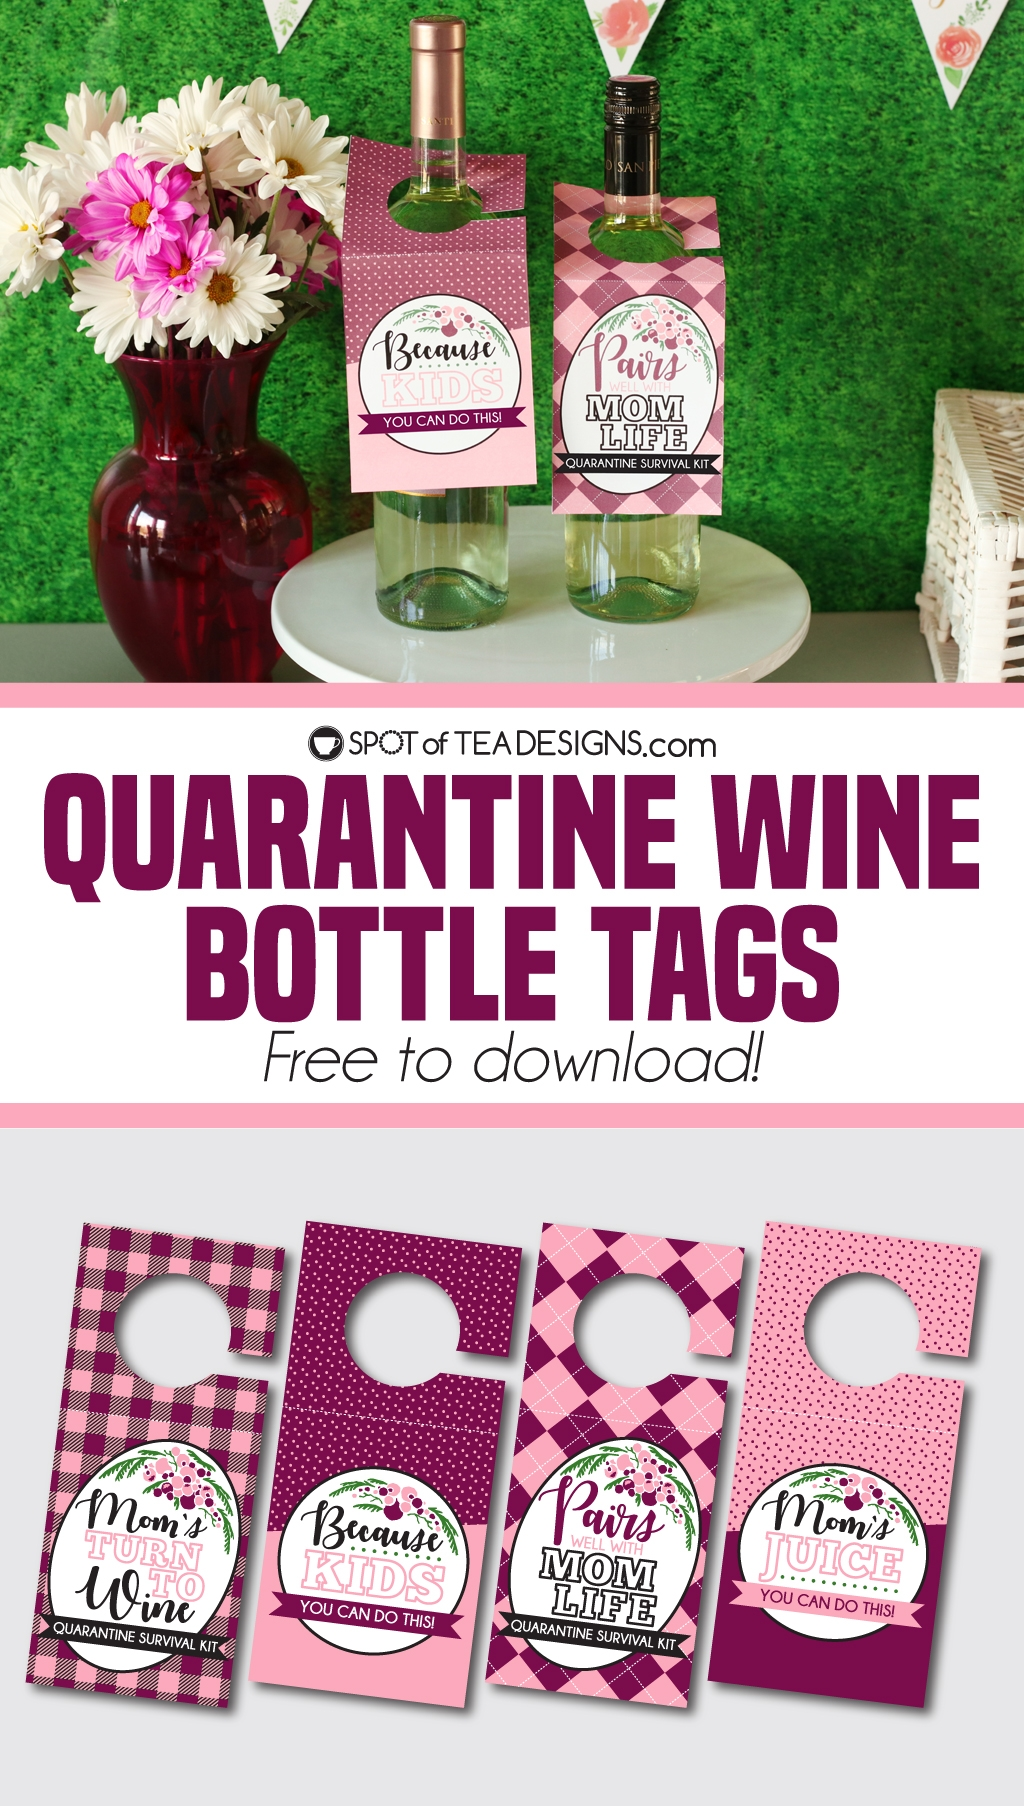 Quarantine Wine Bottle Tags - gift to moms during this quarantine time! | spotofteadesigns.com